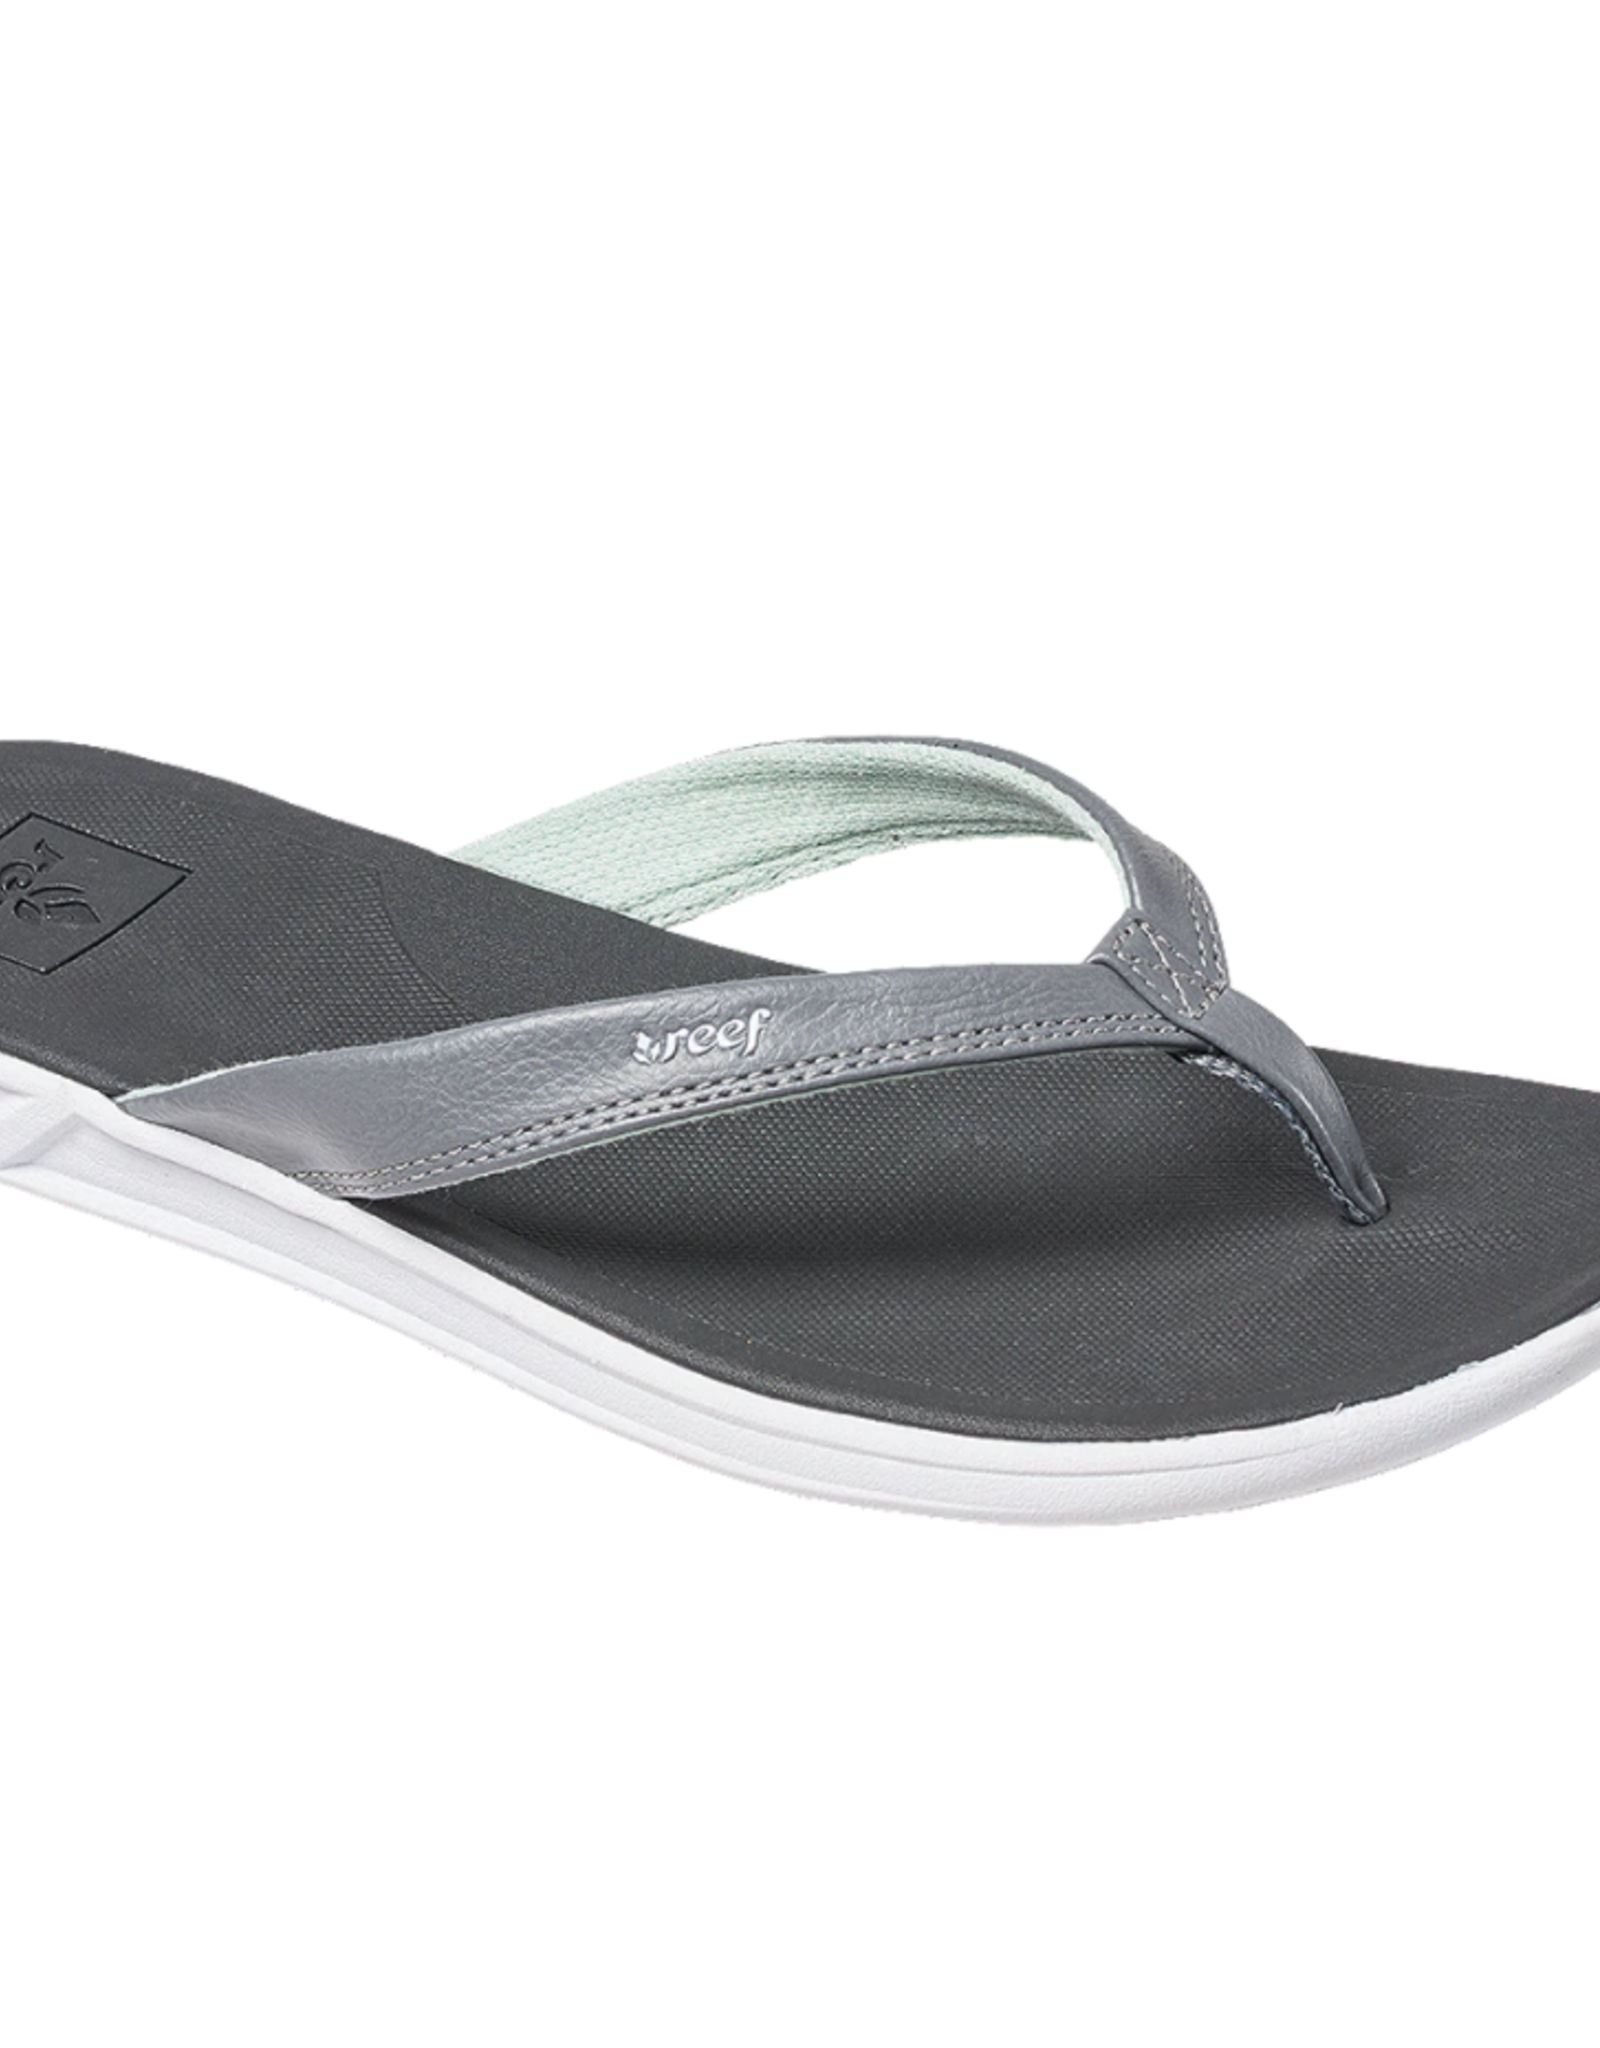 Reef Reef Rover Womens Sandal Catch/Grey Size 6